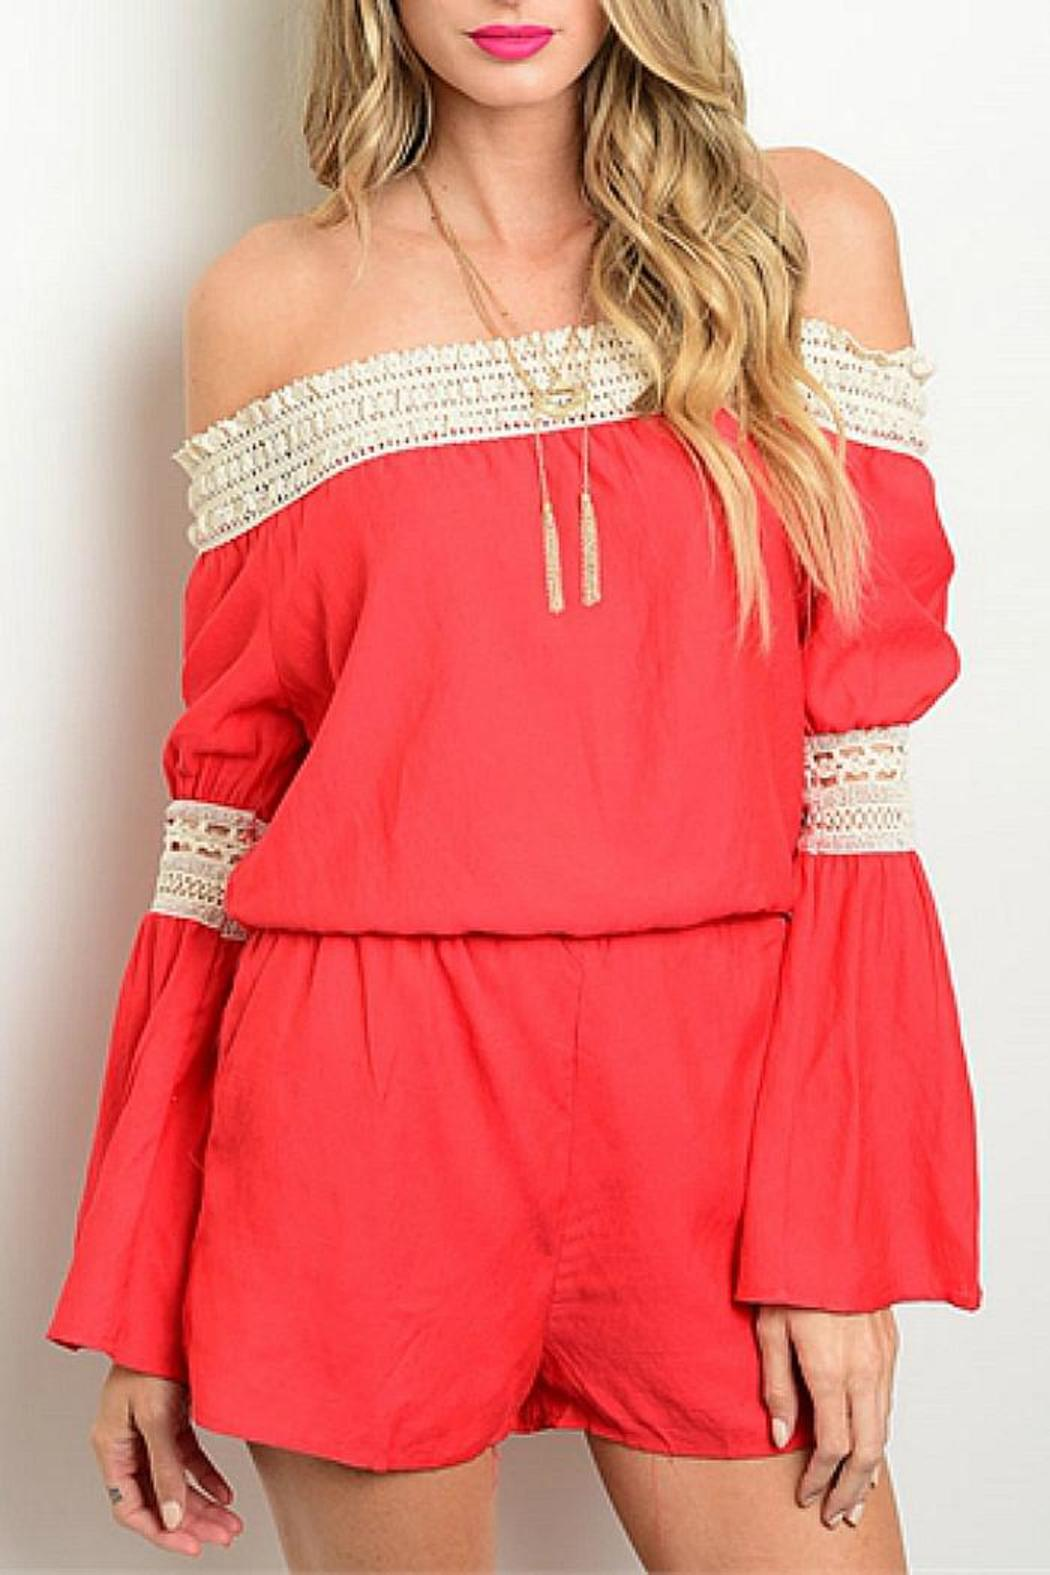 CALS Red Lace Romper - Main Image